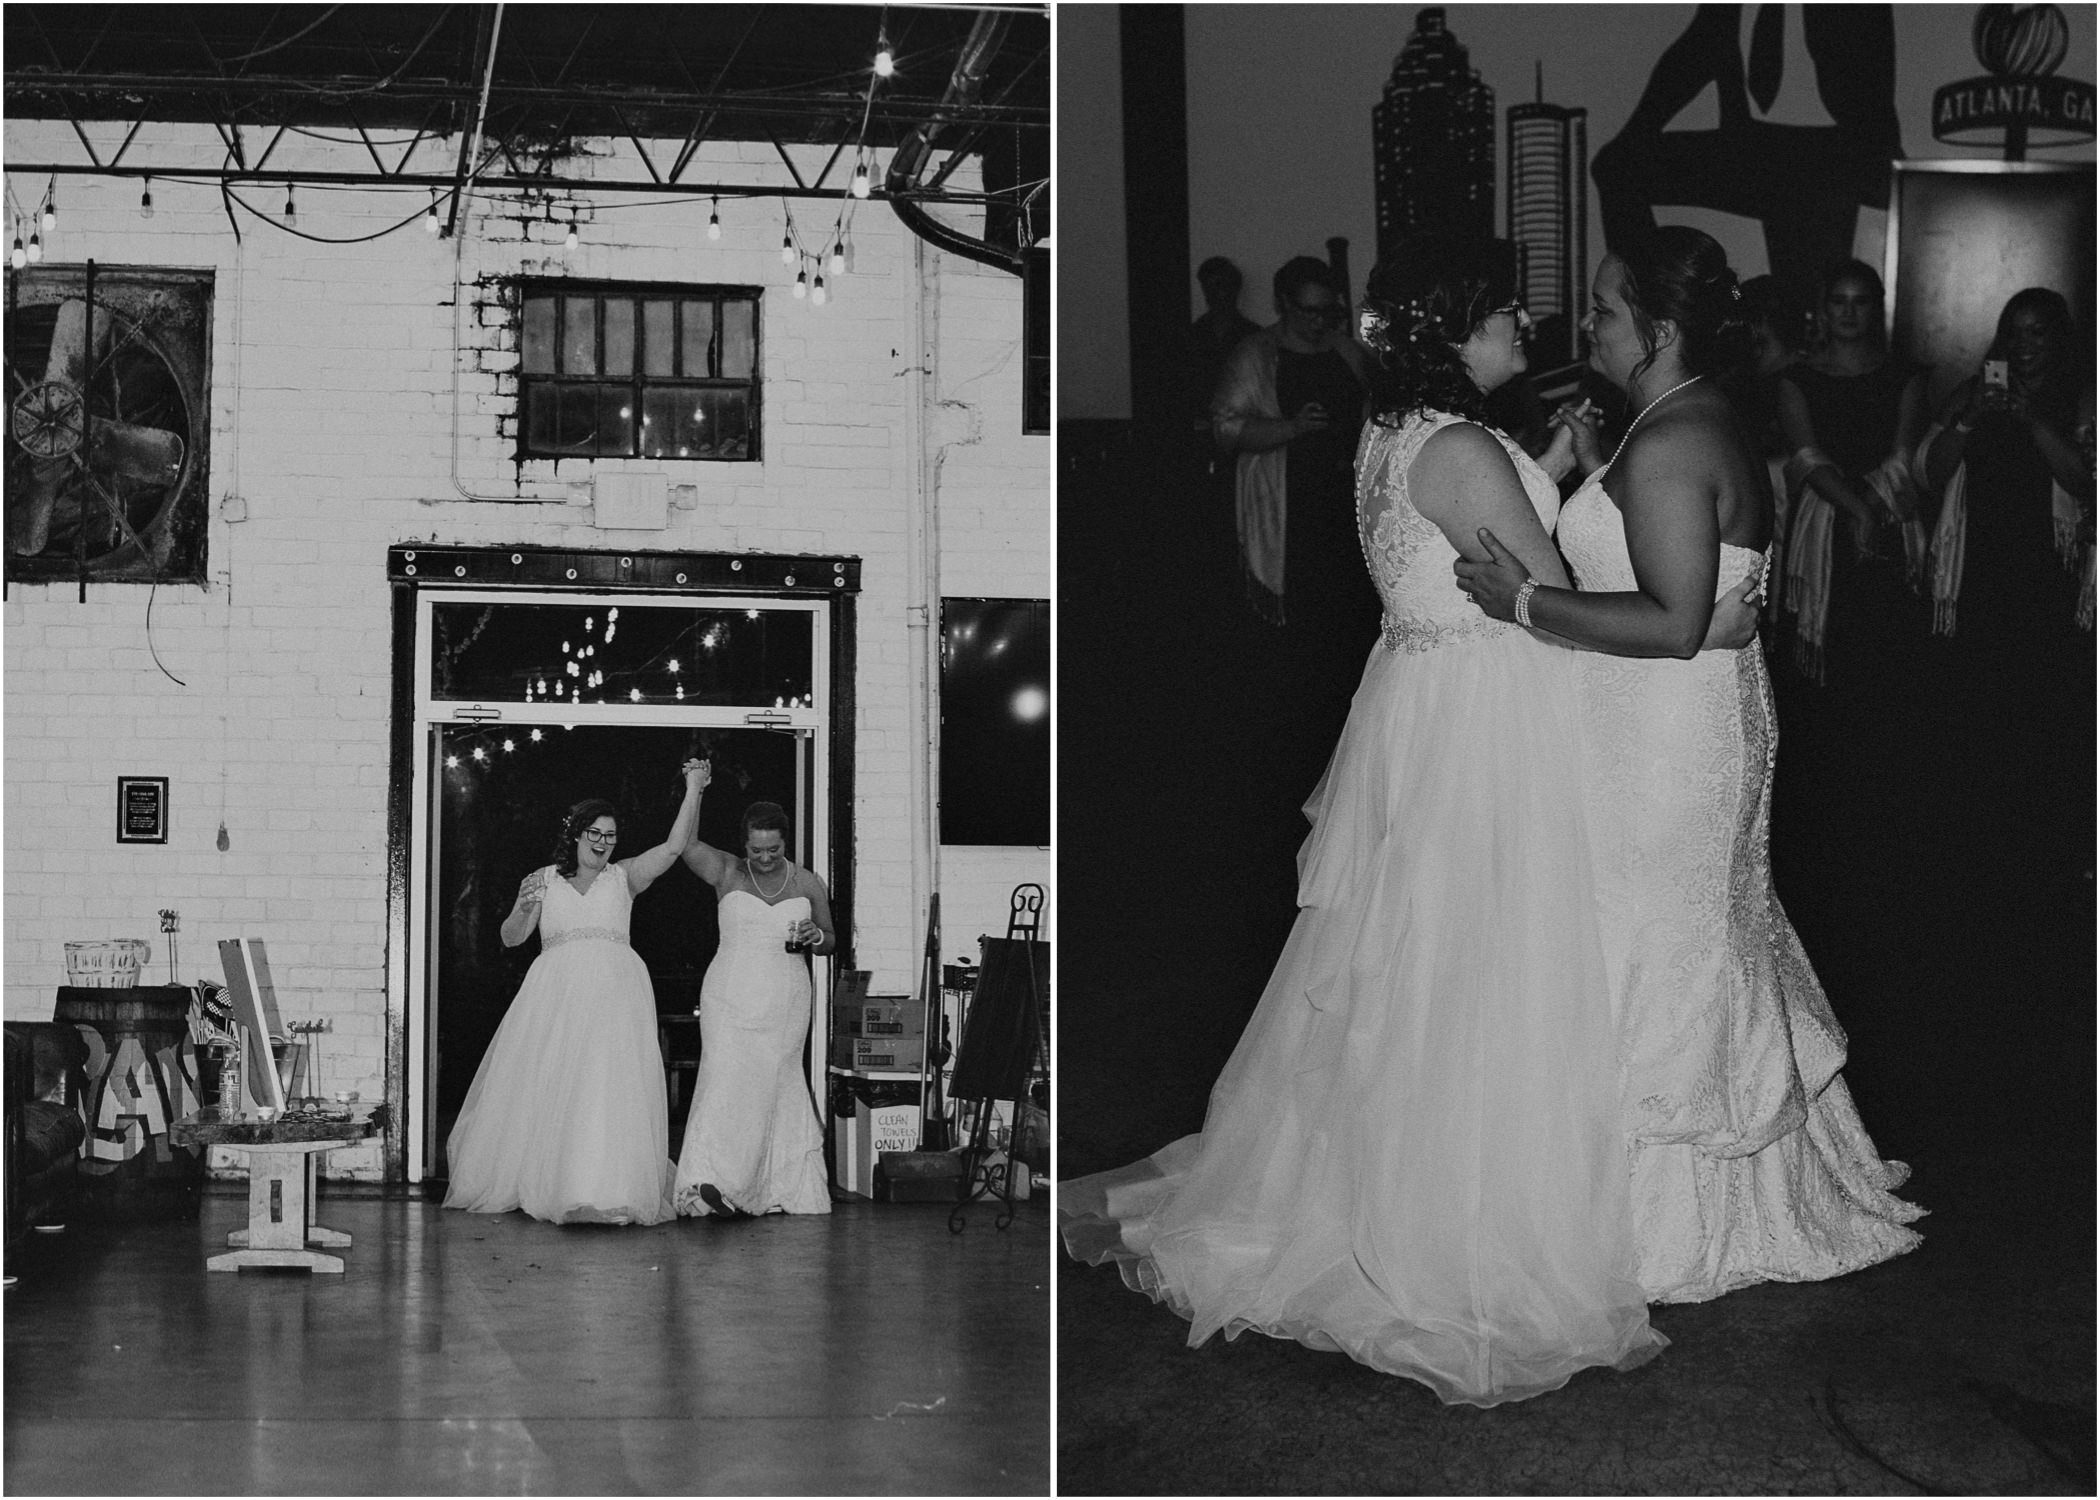 108 - Atlanta wedding photographer - Same sex wedding - wedding dress - details - ceremony - reception - bridal party - two brides. Aline Marin Photography .jpg.JPG